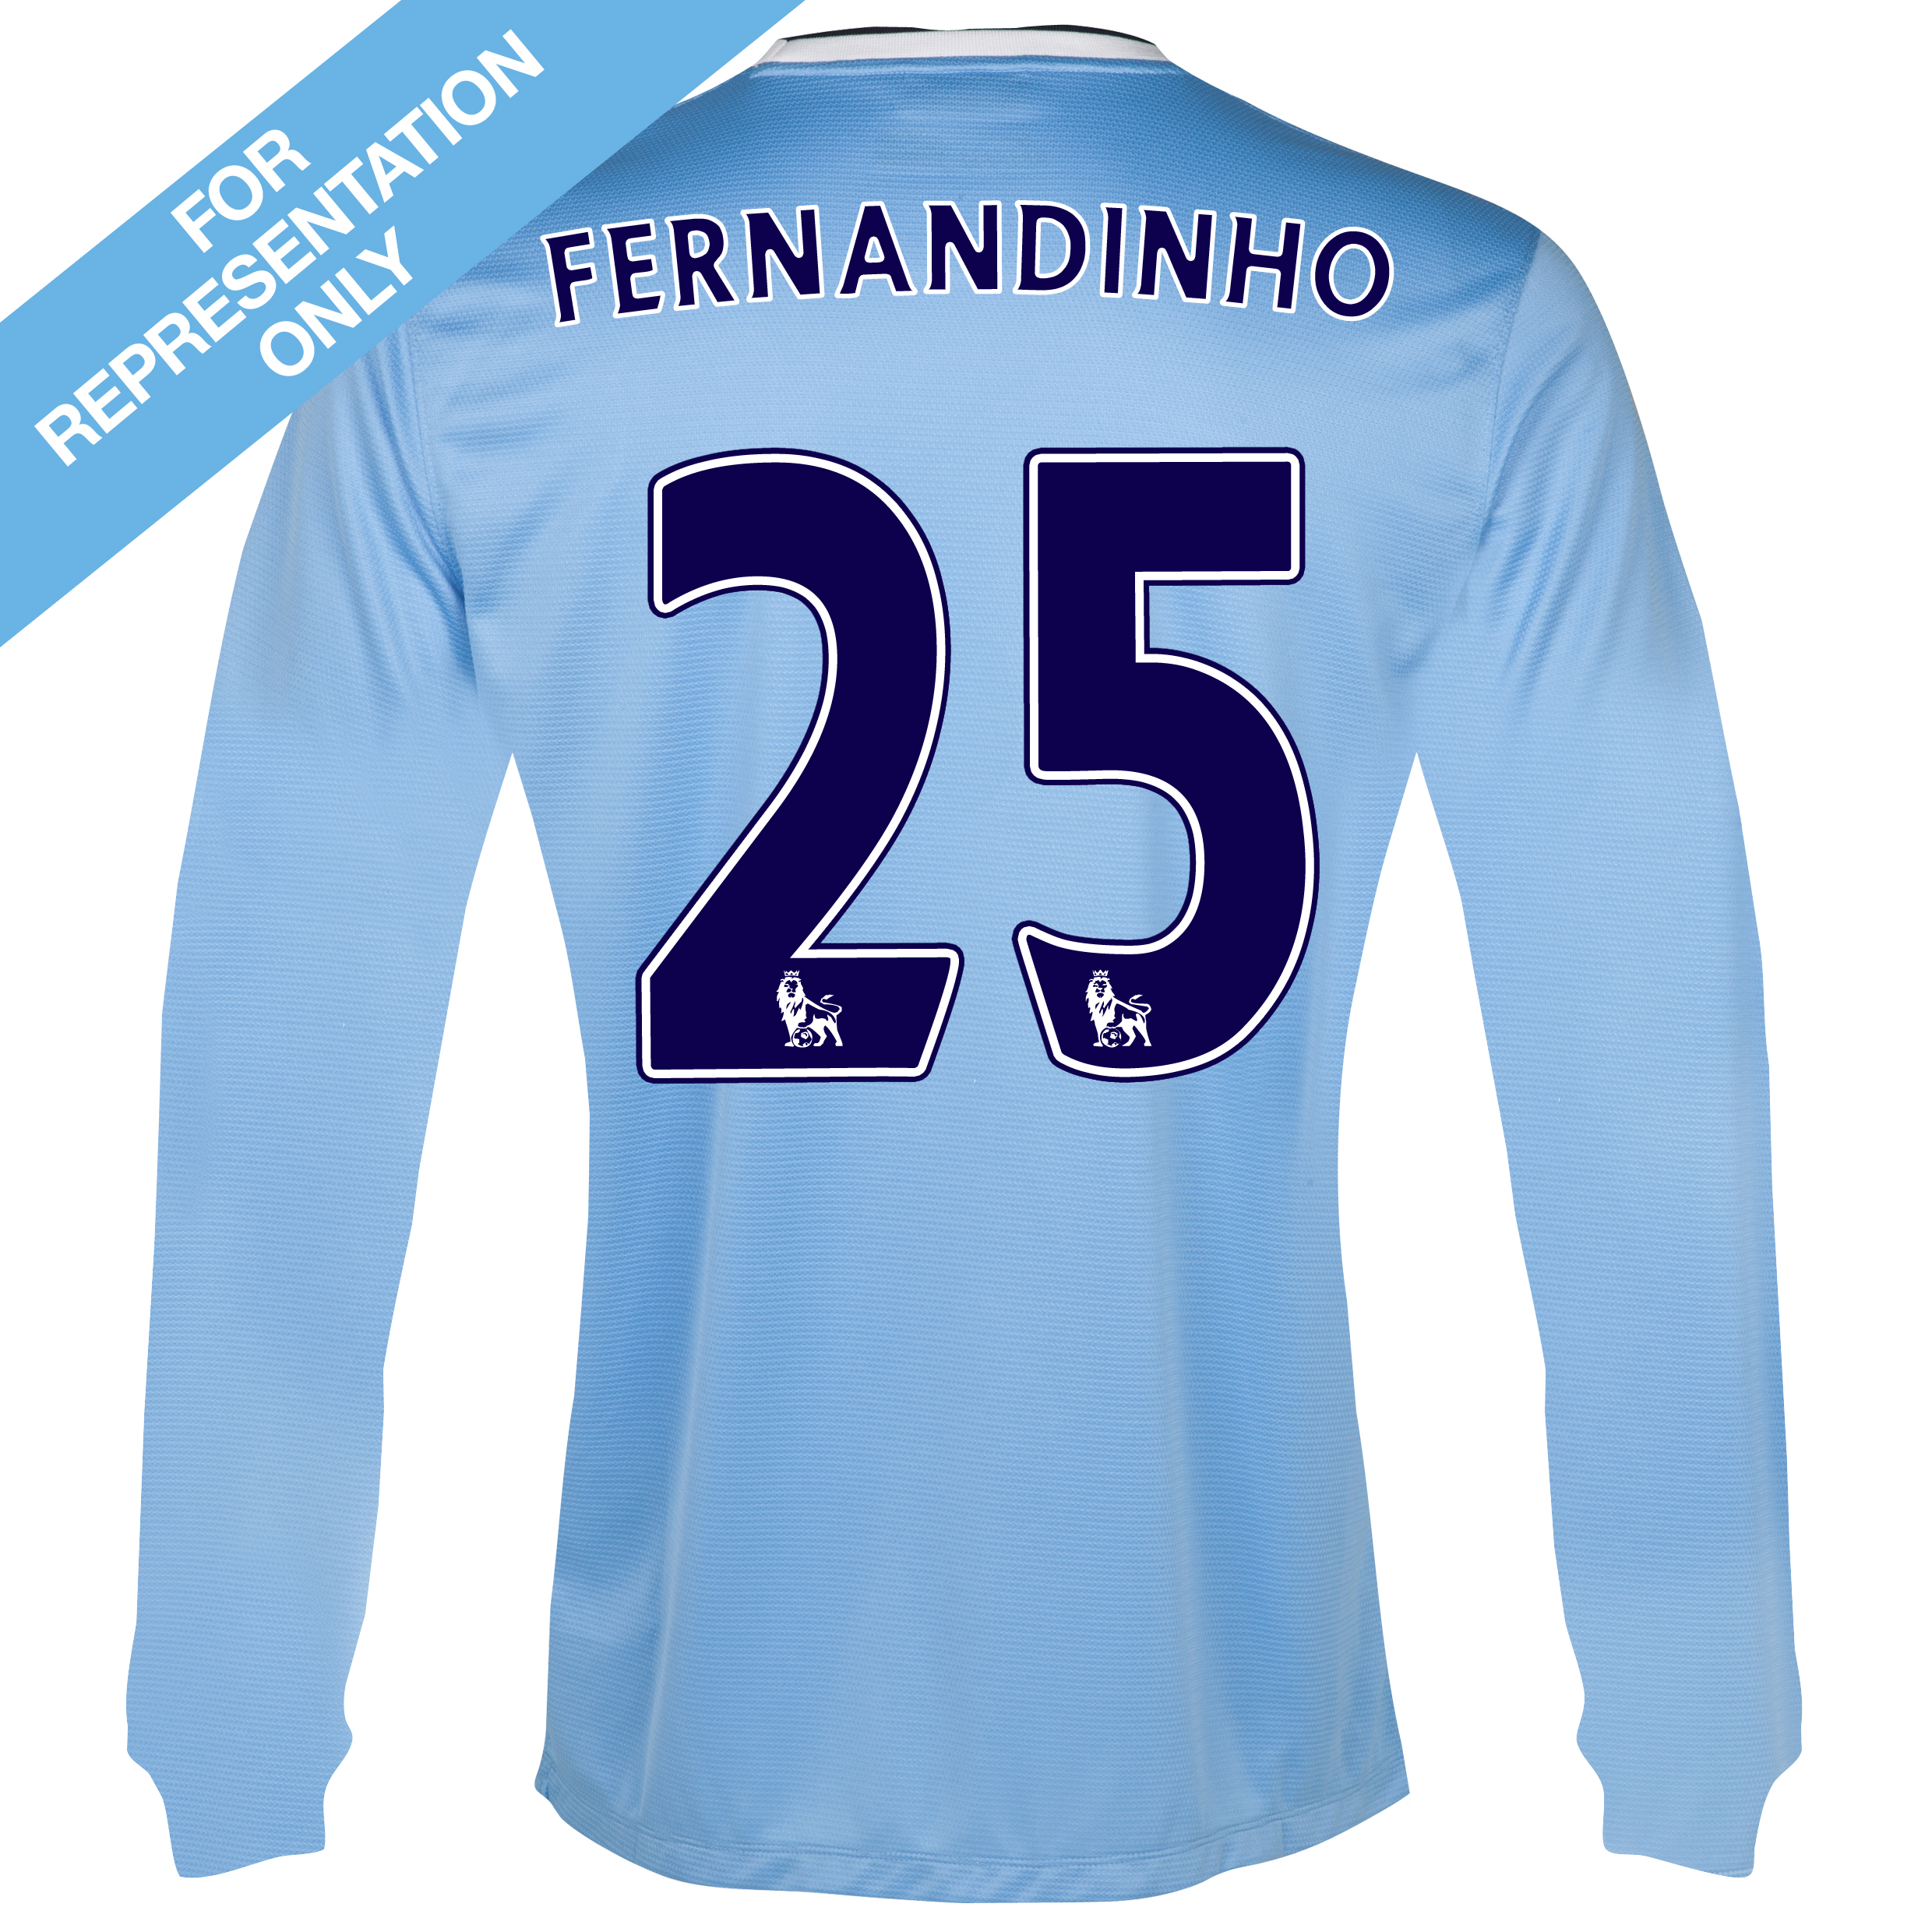 Manchester City Home Shirt 2013/14 - Long Sleeved with Fernandinho 25 printing